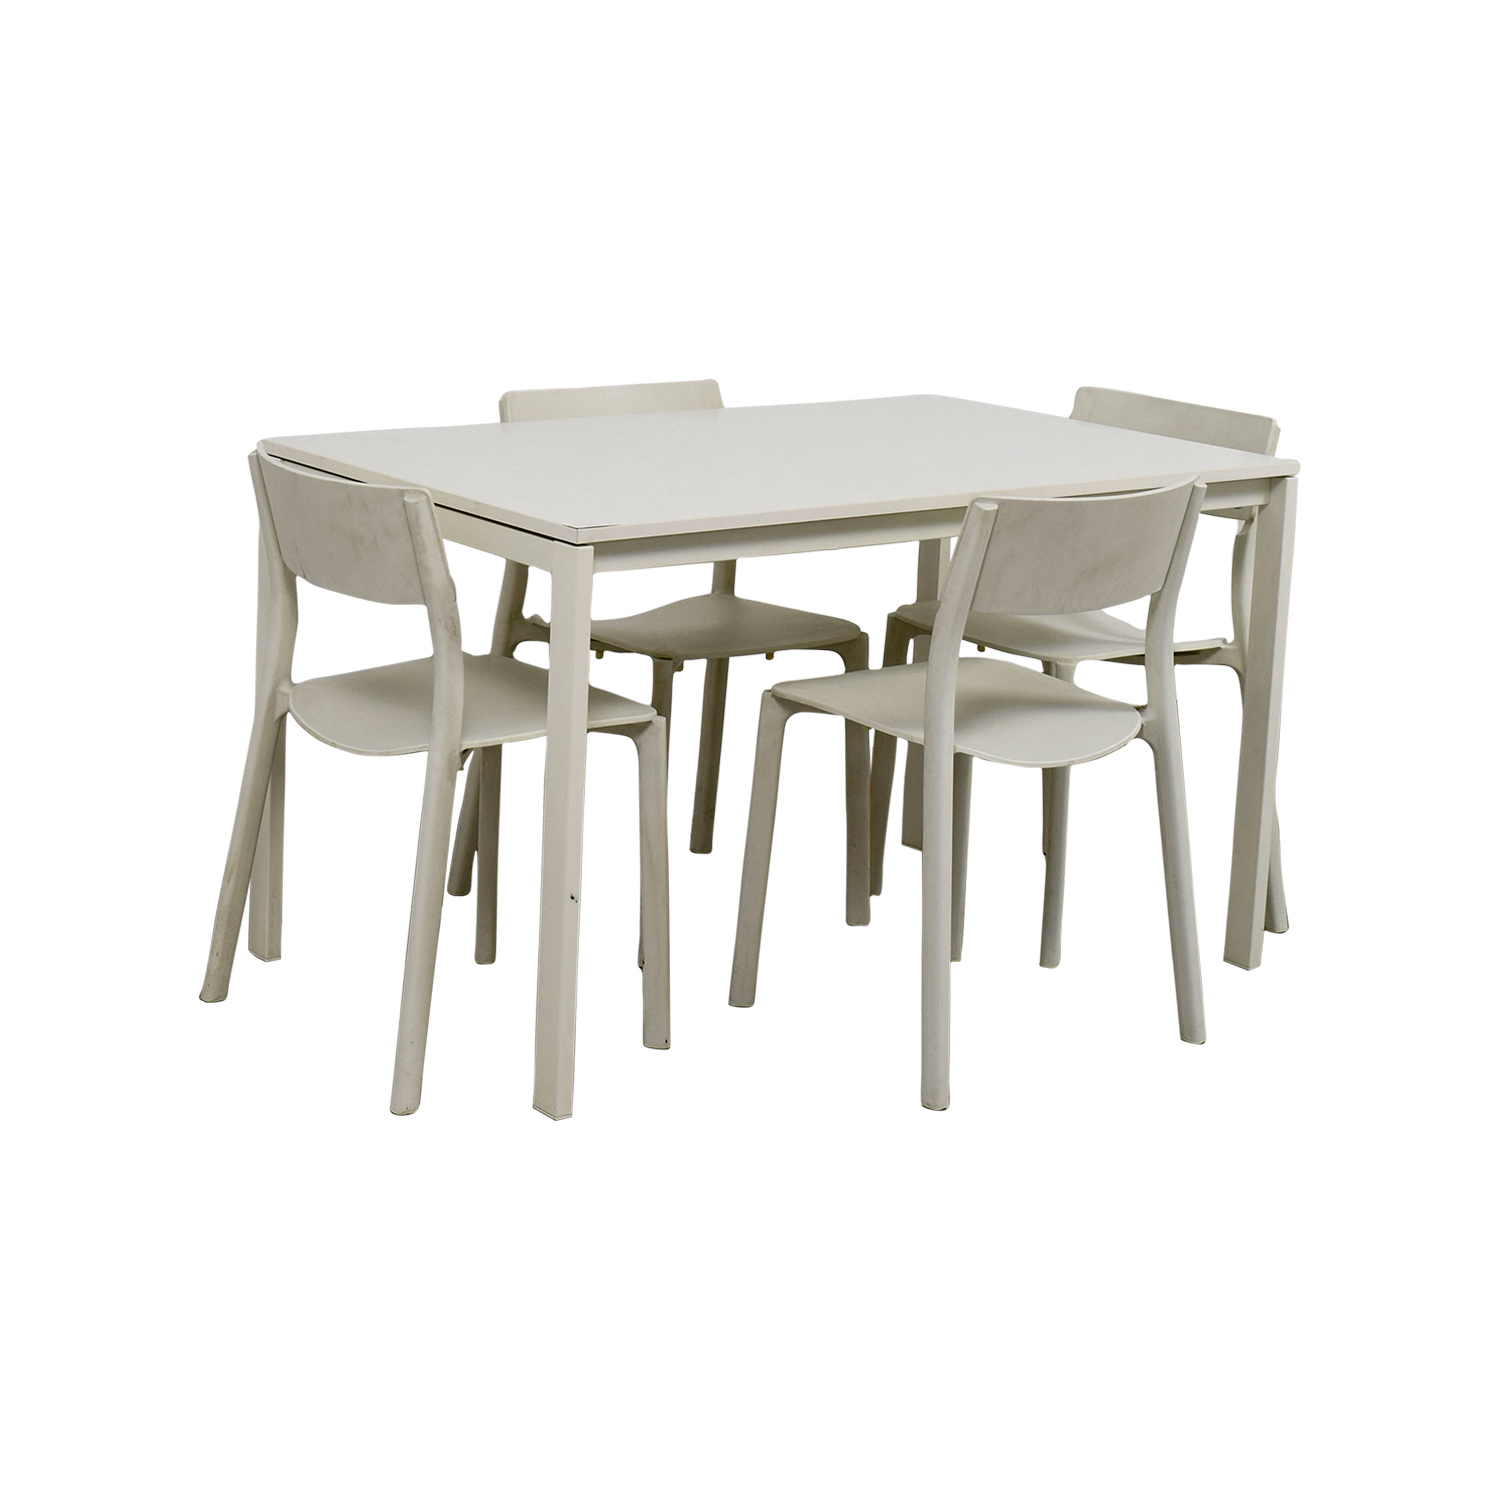 65 off ikea ikea white kitchen table and chairs tables for White kitchen table set